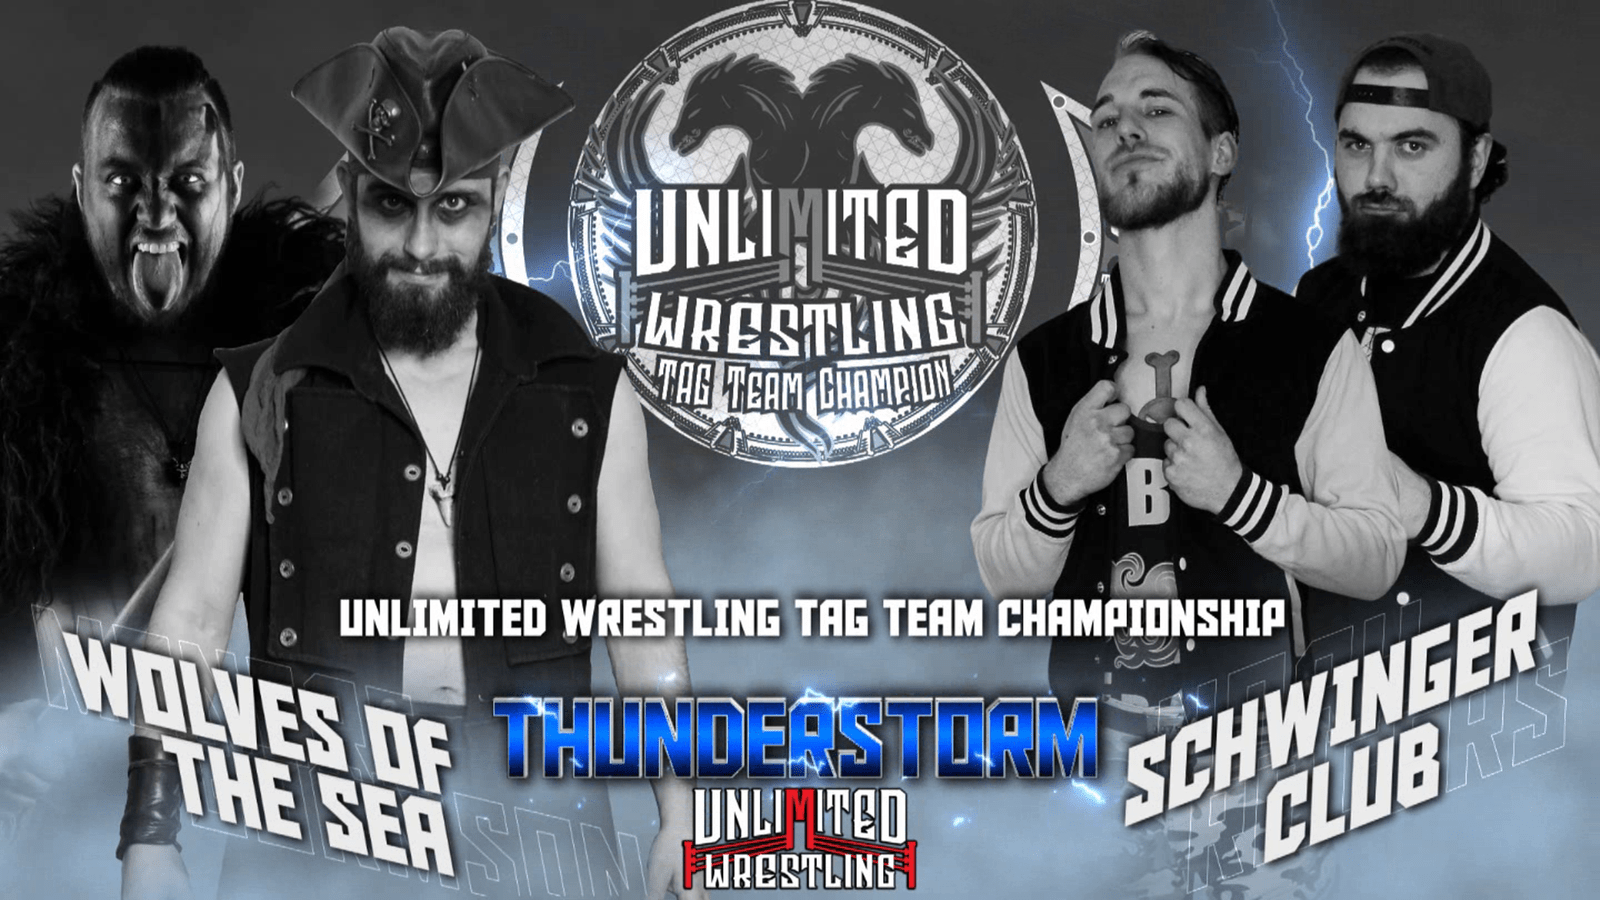 UNLIMITED TAG TEAM CHAMPIONSHIP Wolves of the Sea vs. Schwinger Club